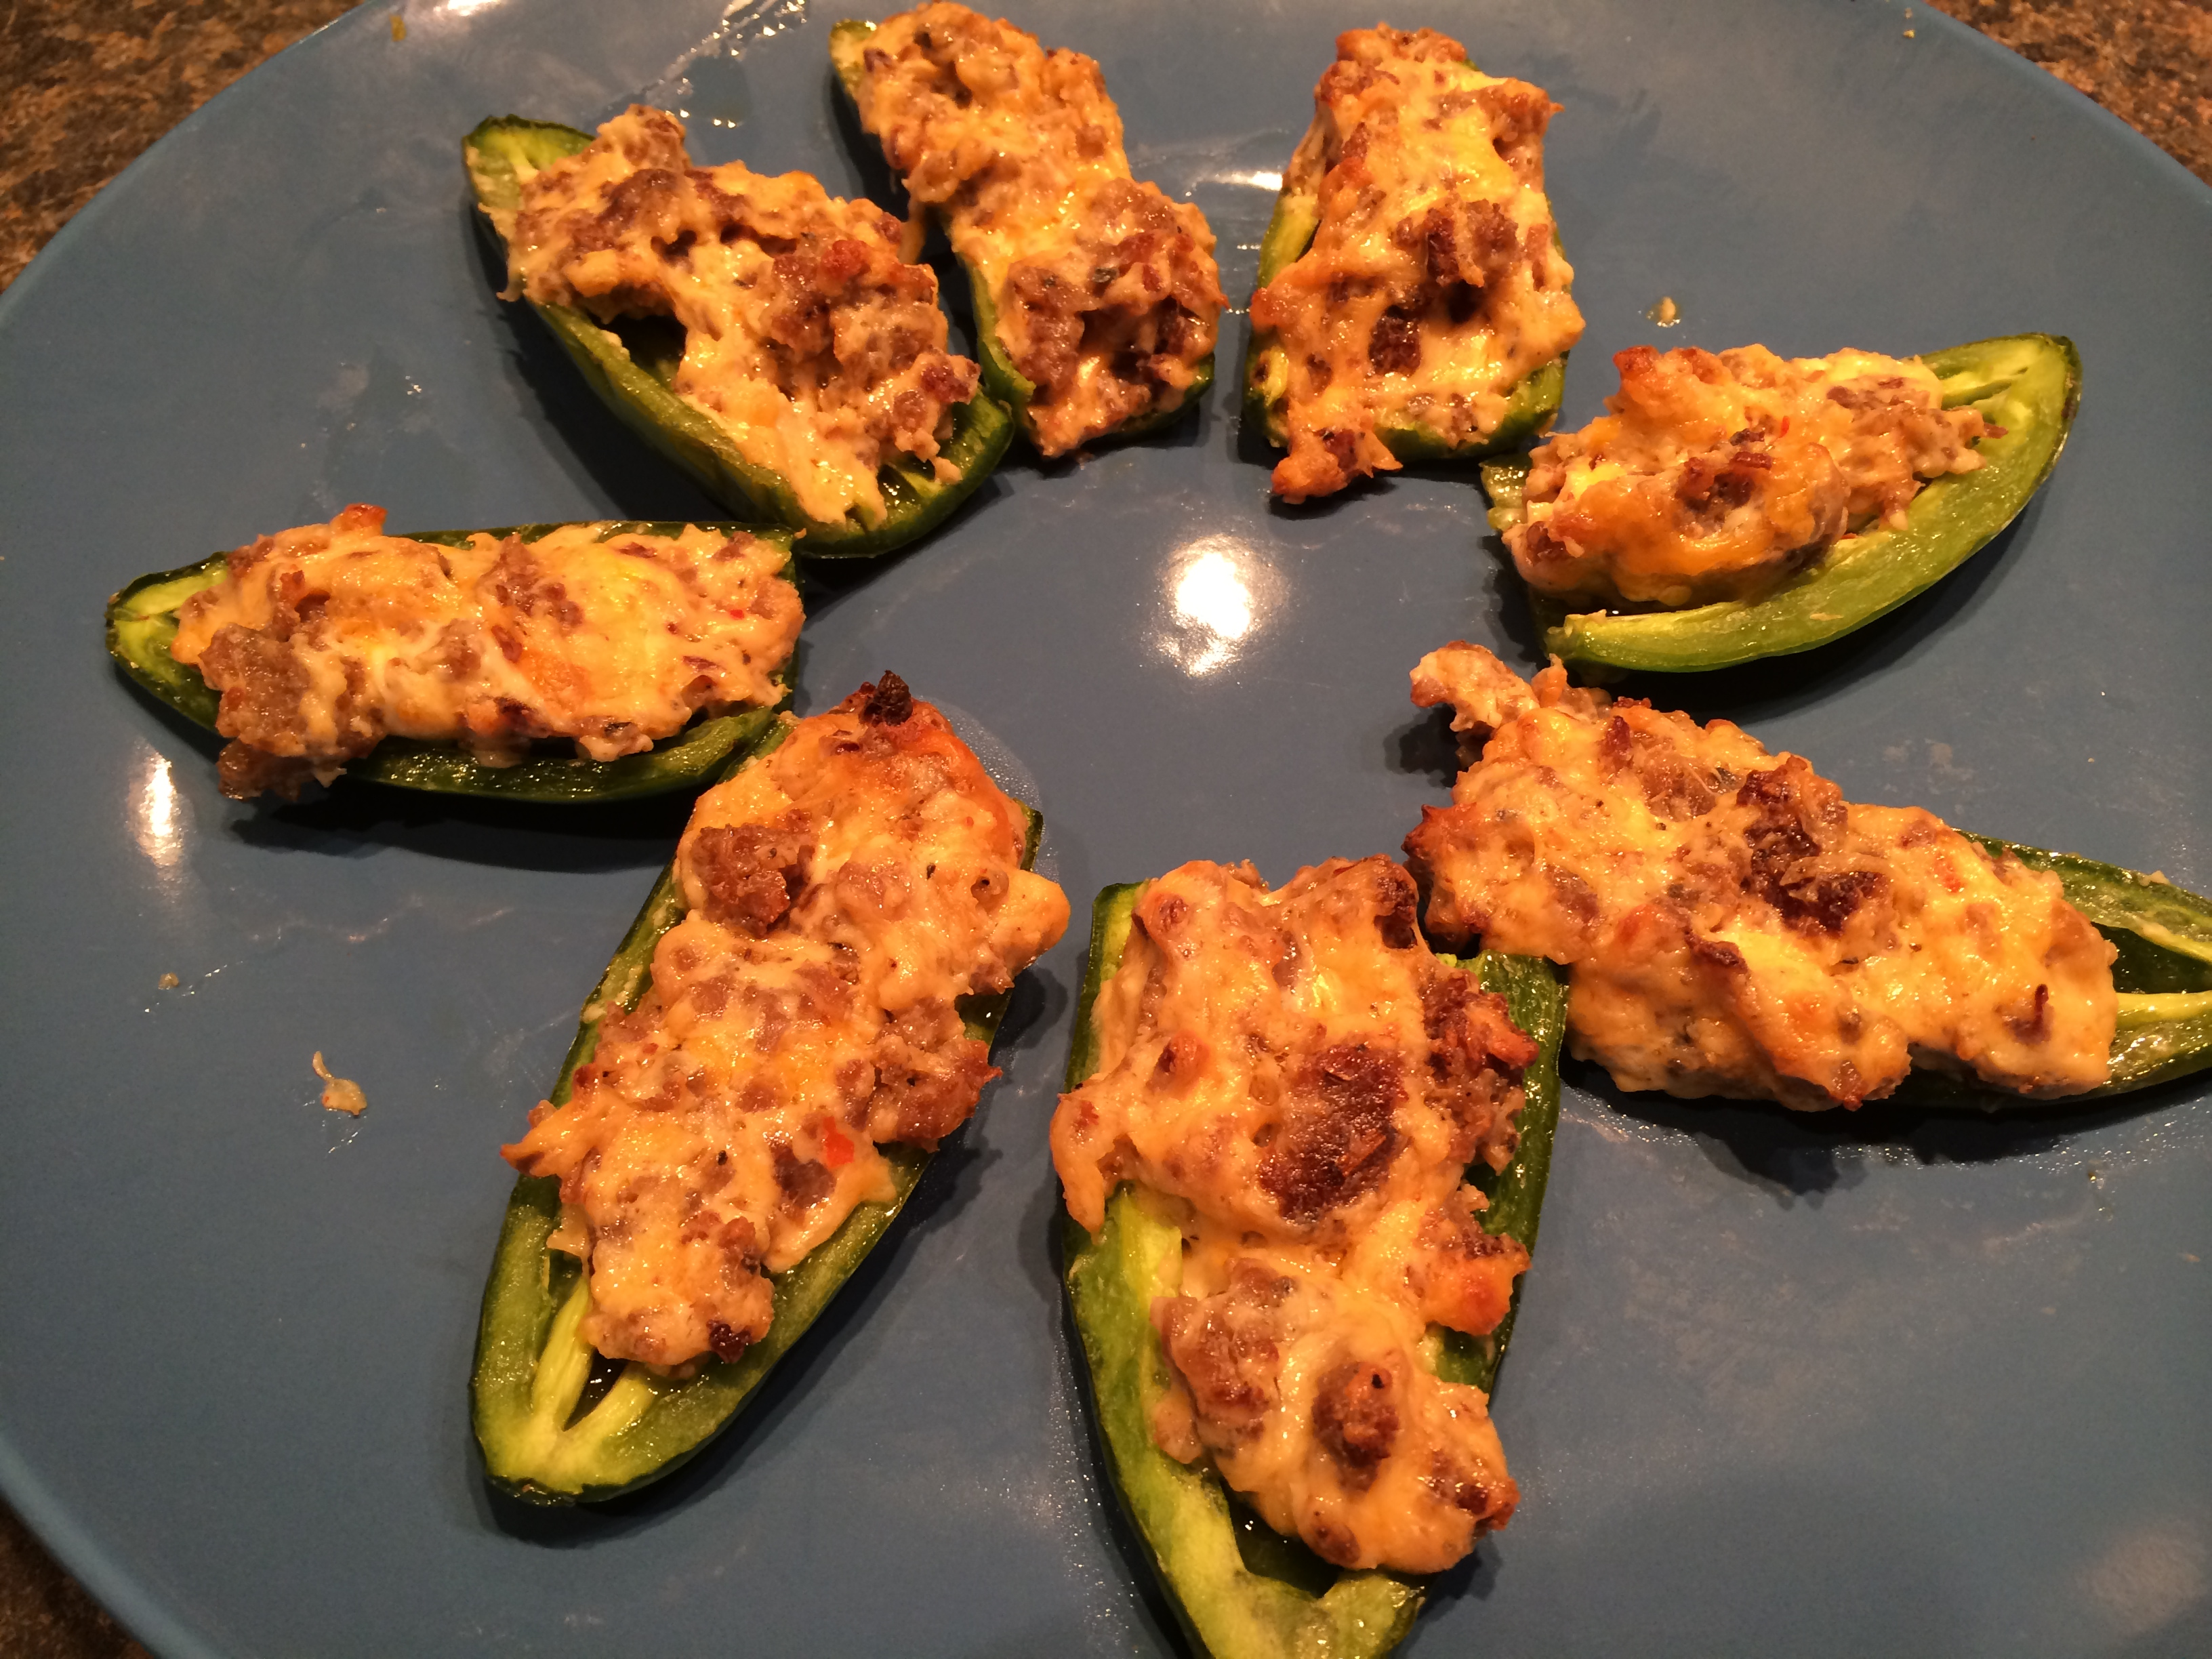 Zesty Low Carb Jalapeno Peppers Stuffed With Sausage And